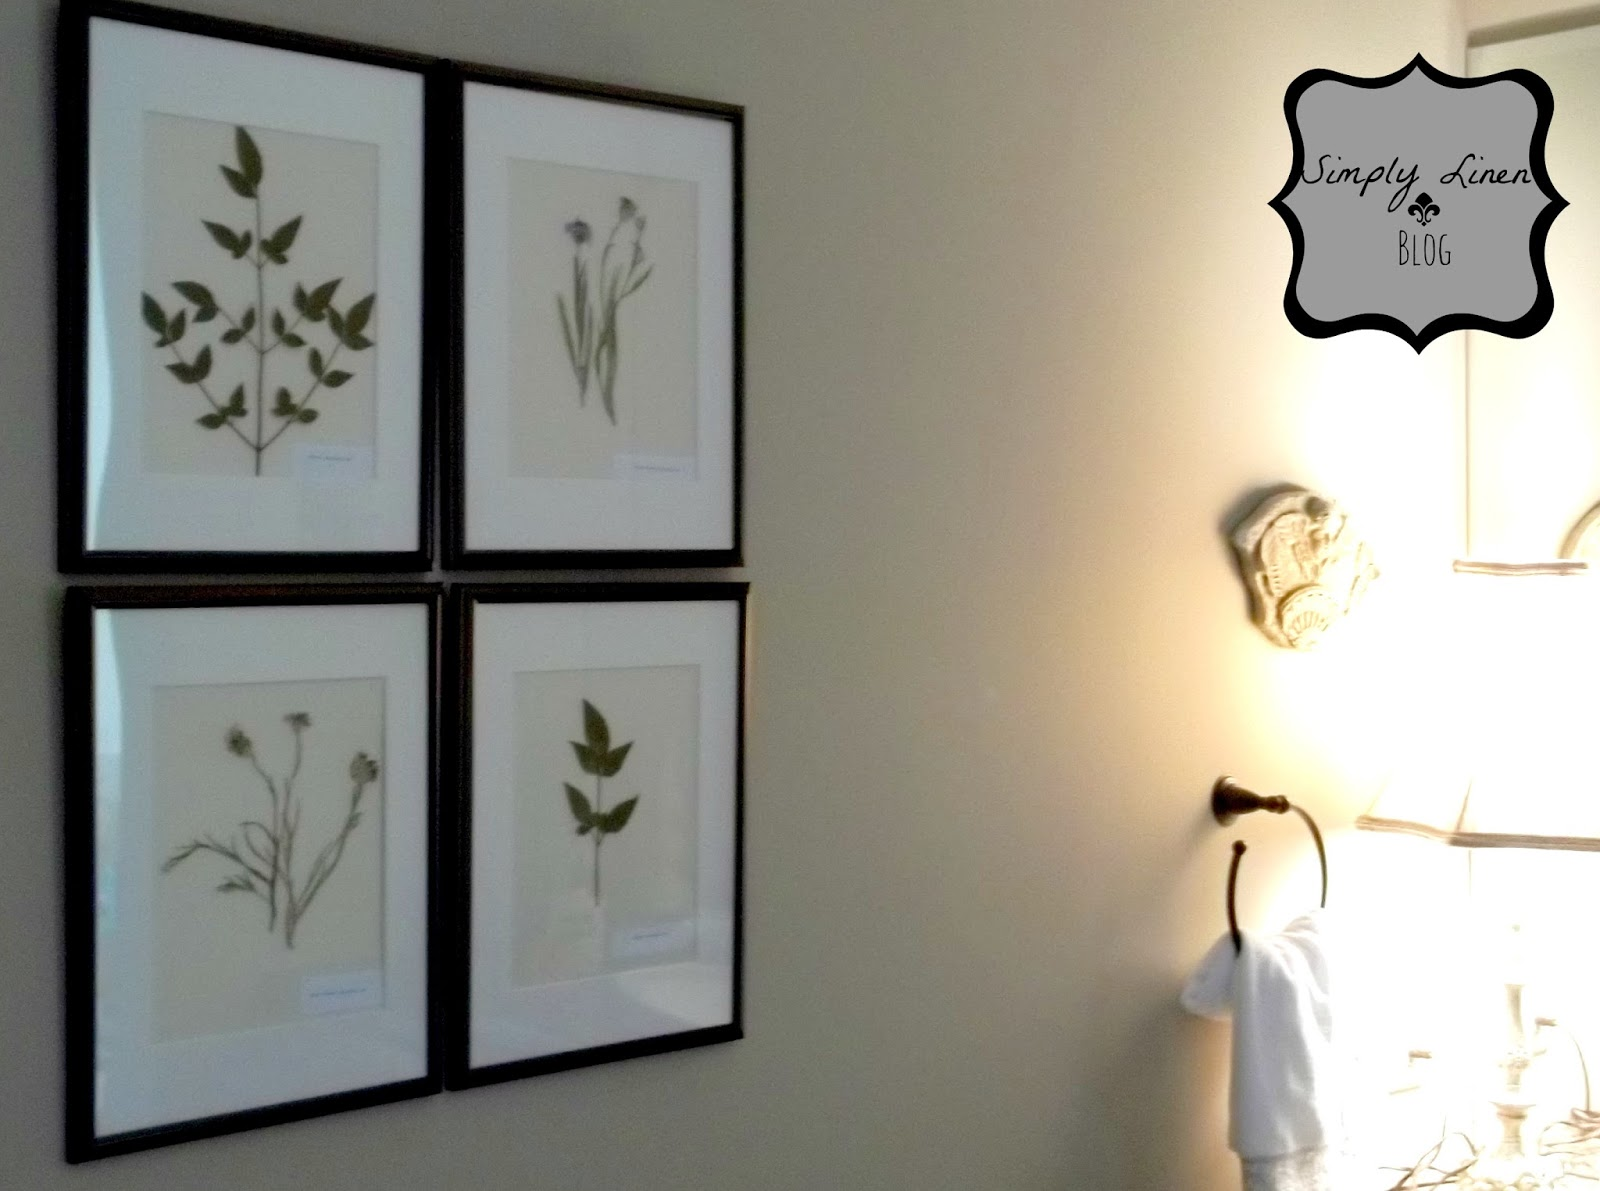 Simplylinen Pressed Flower Artwork